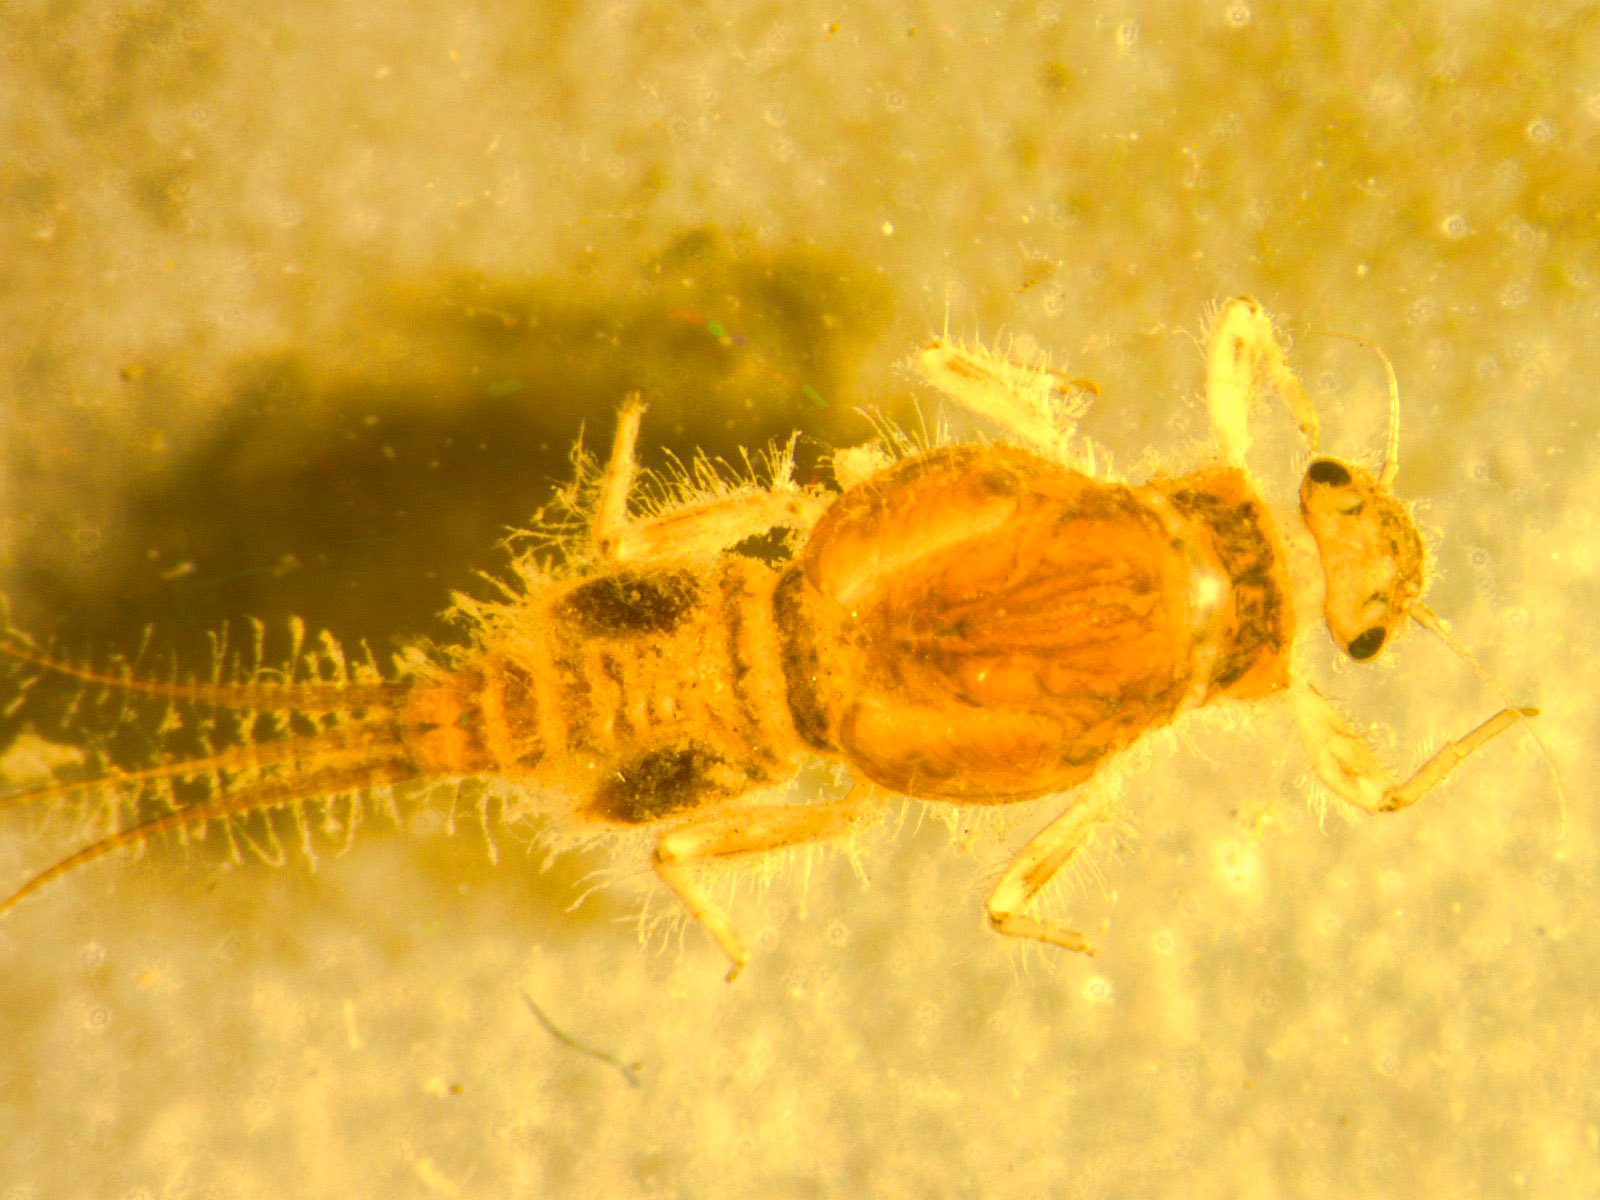 Tricorythodes (Tricos) Mayfly Larva from Willow Creek in Oregon